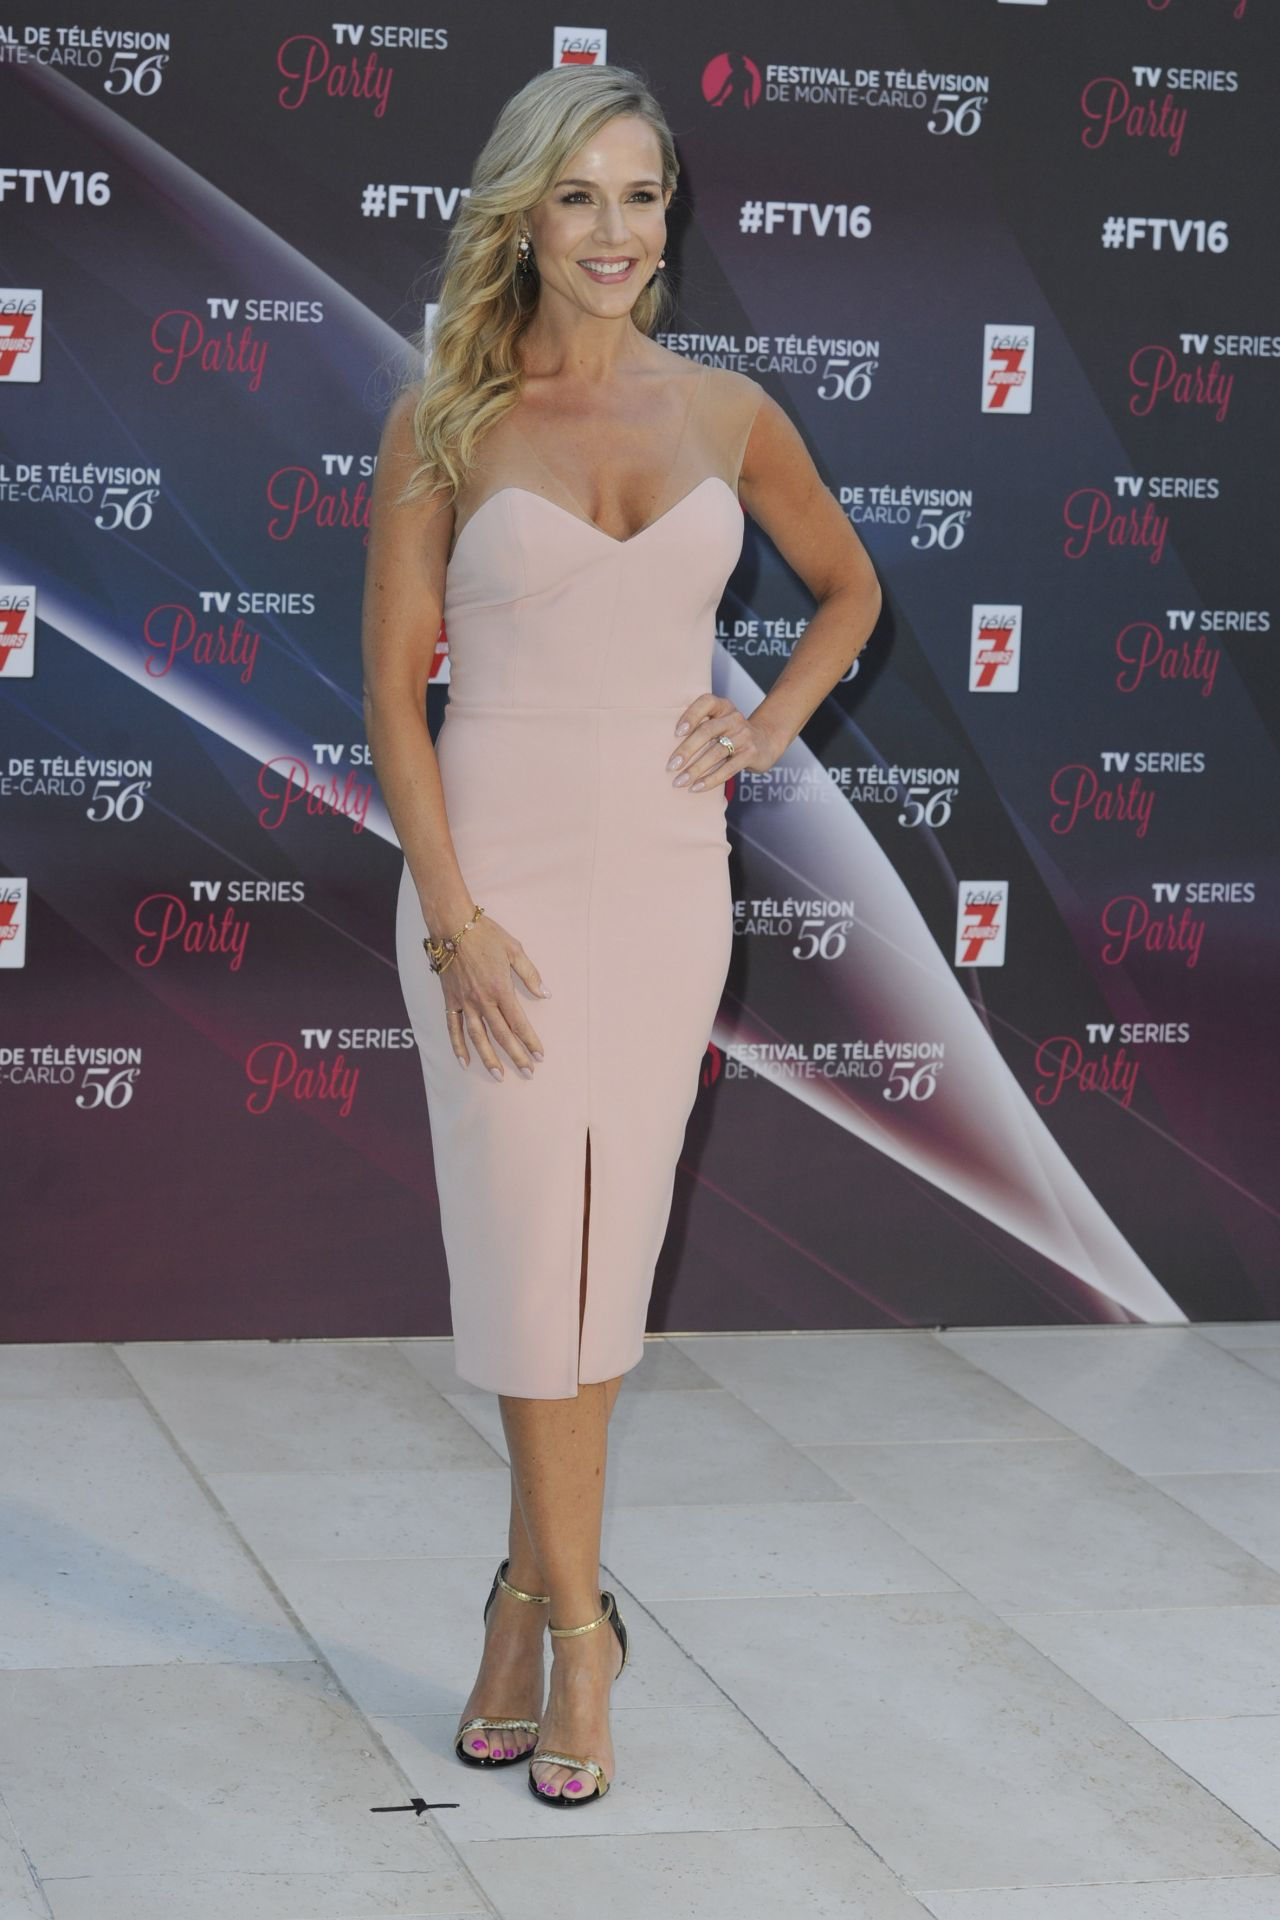 Julie Benz  TV Series Party at the 56th MonteCarlo Television Festival in Monaco